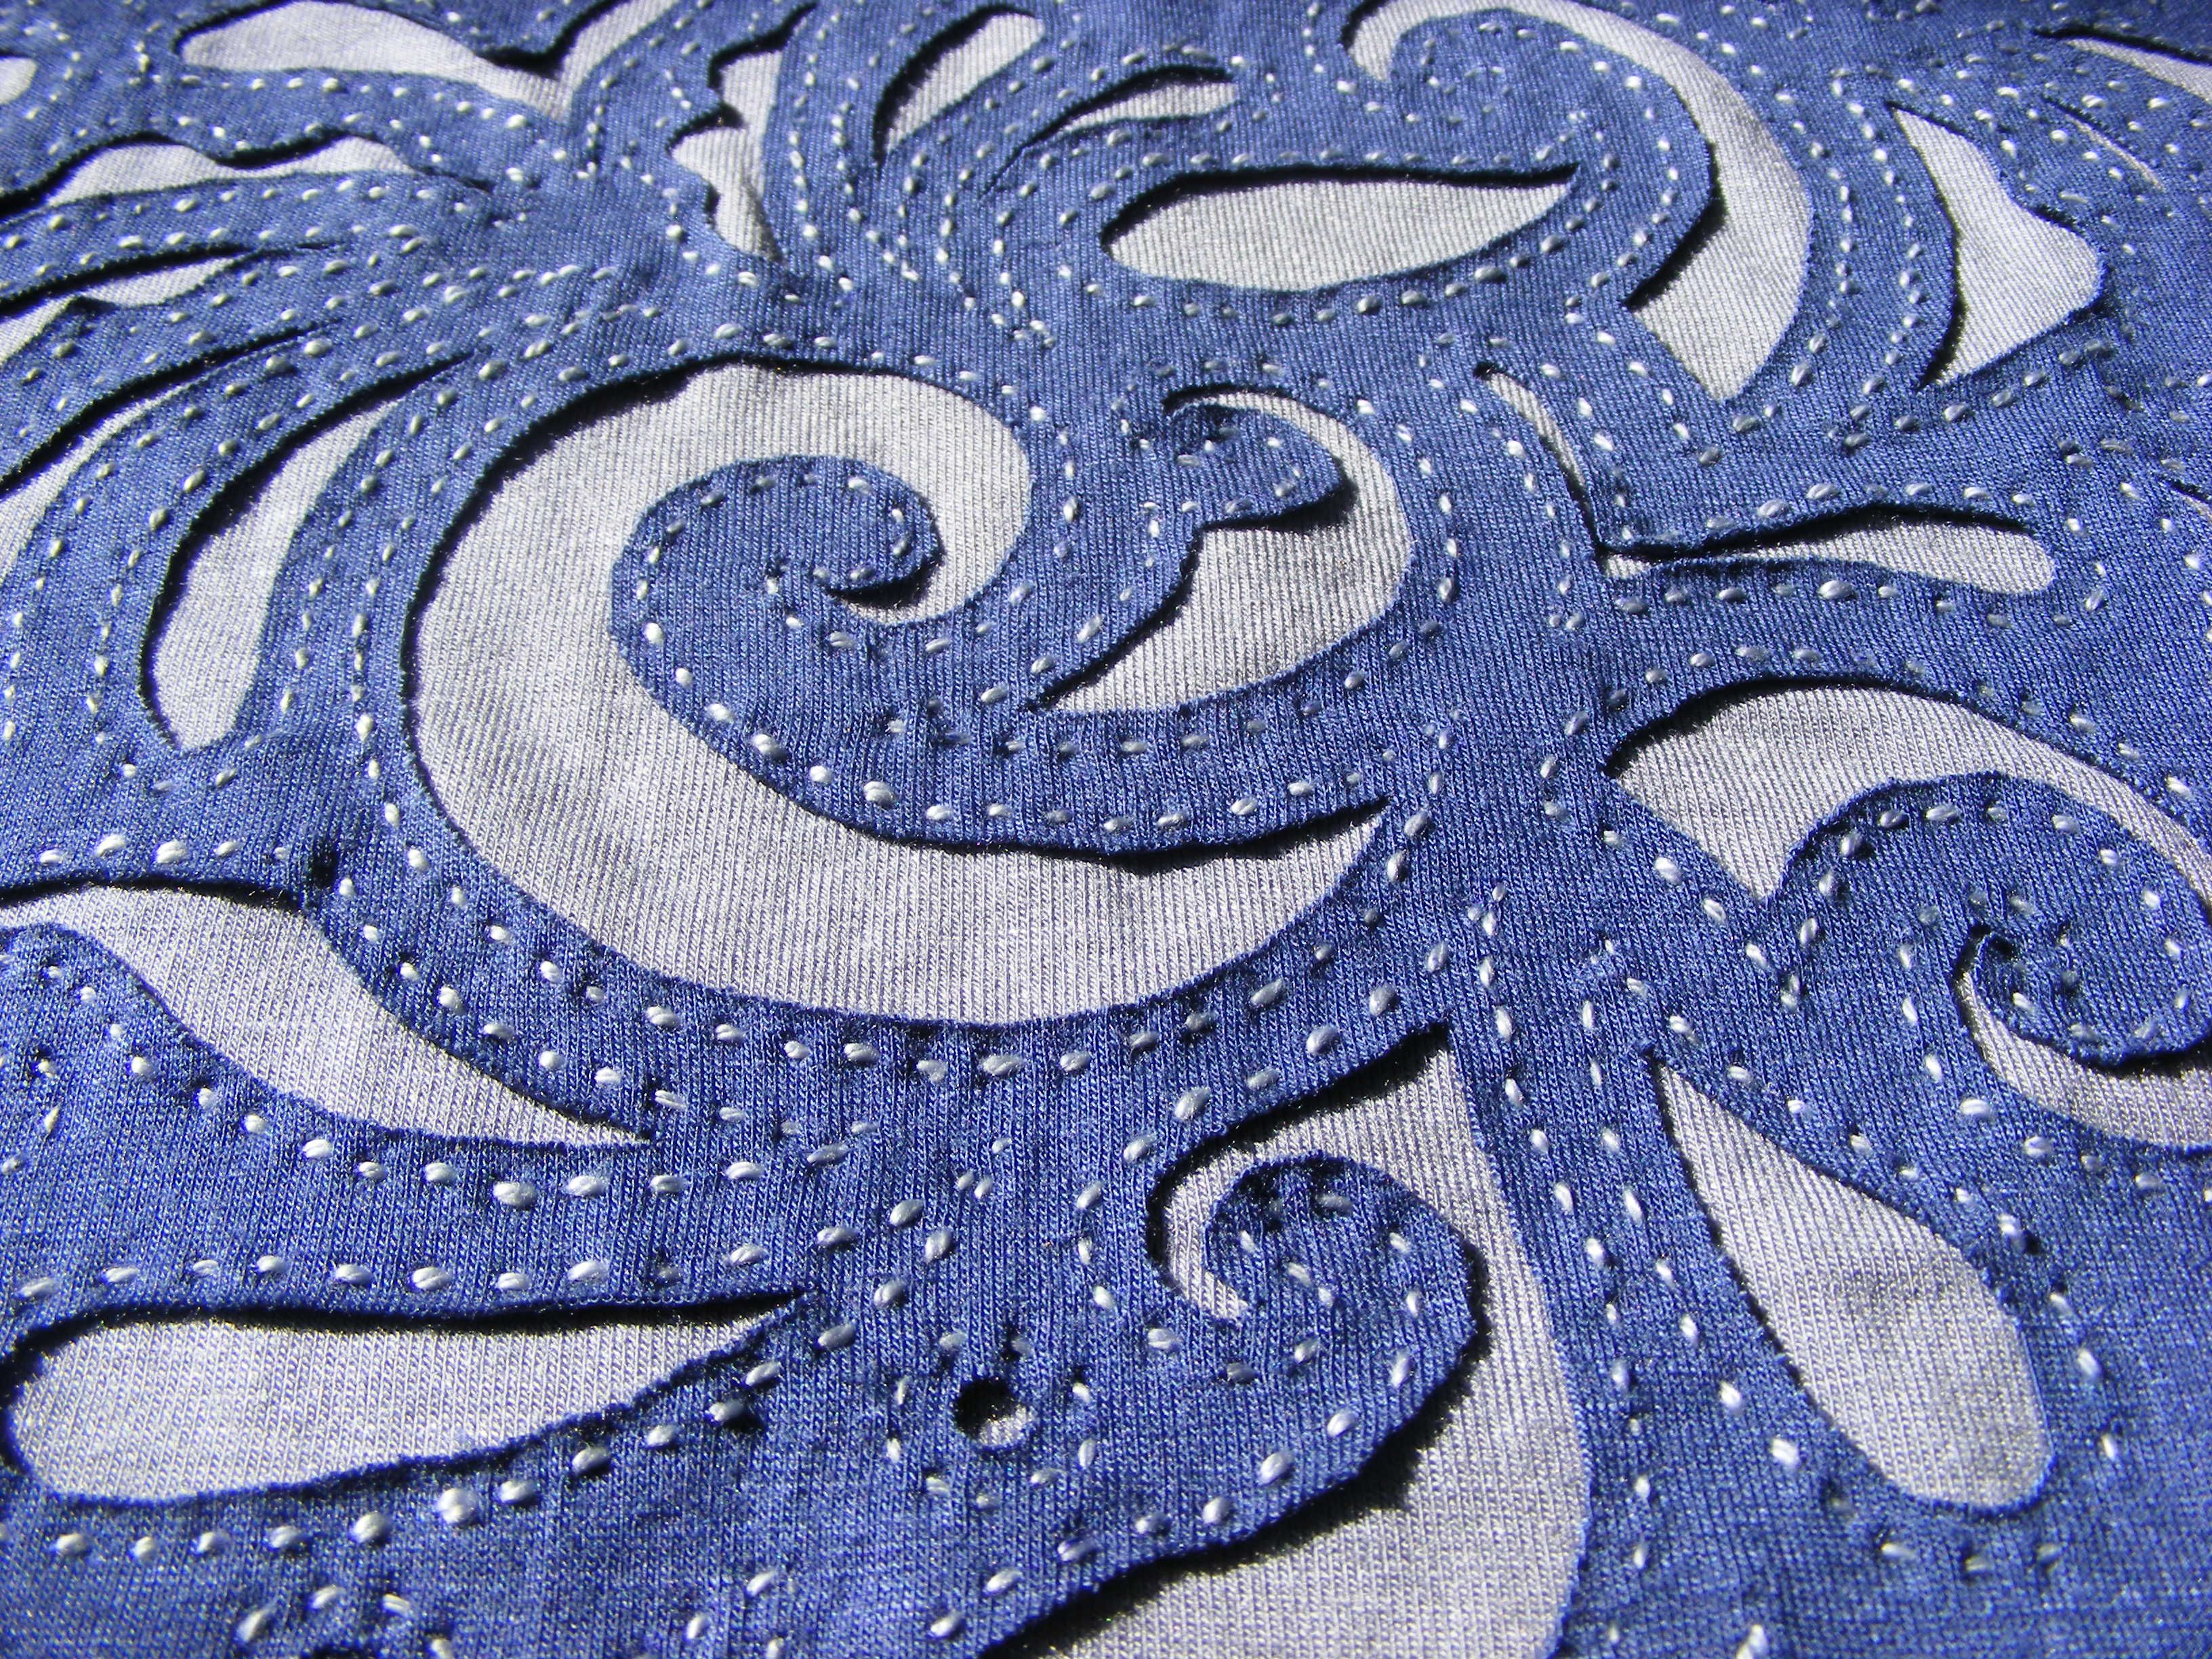 Reverse Applique Embroidery